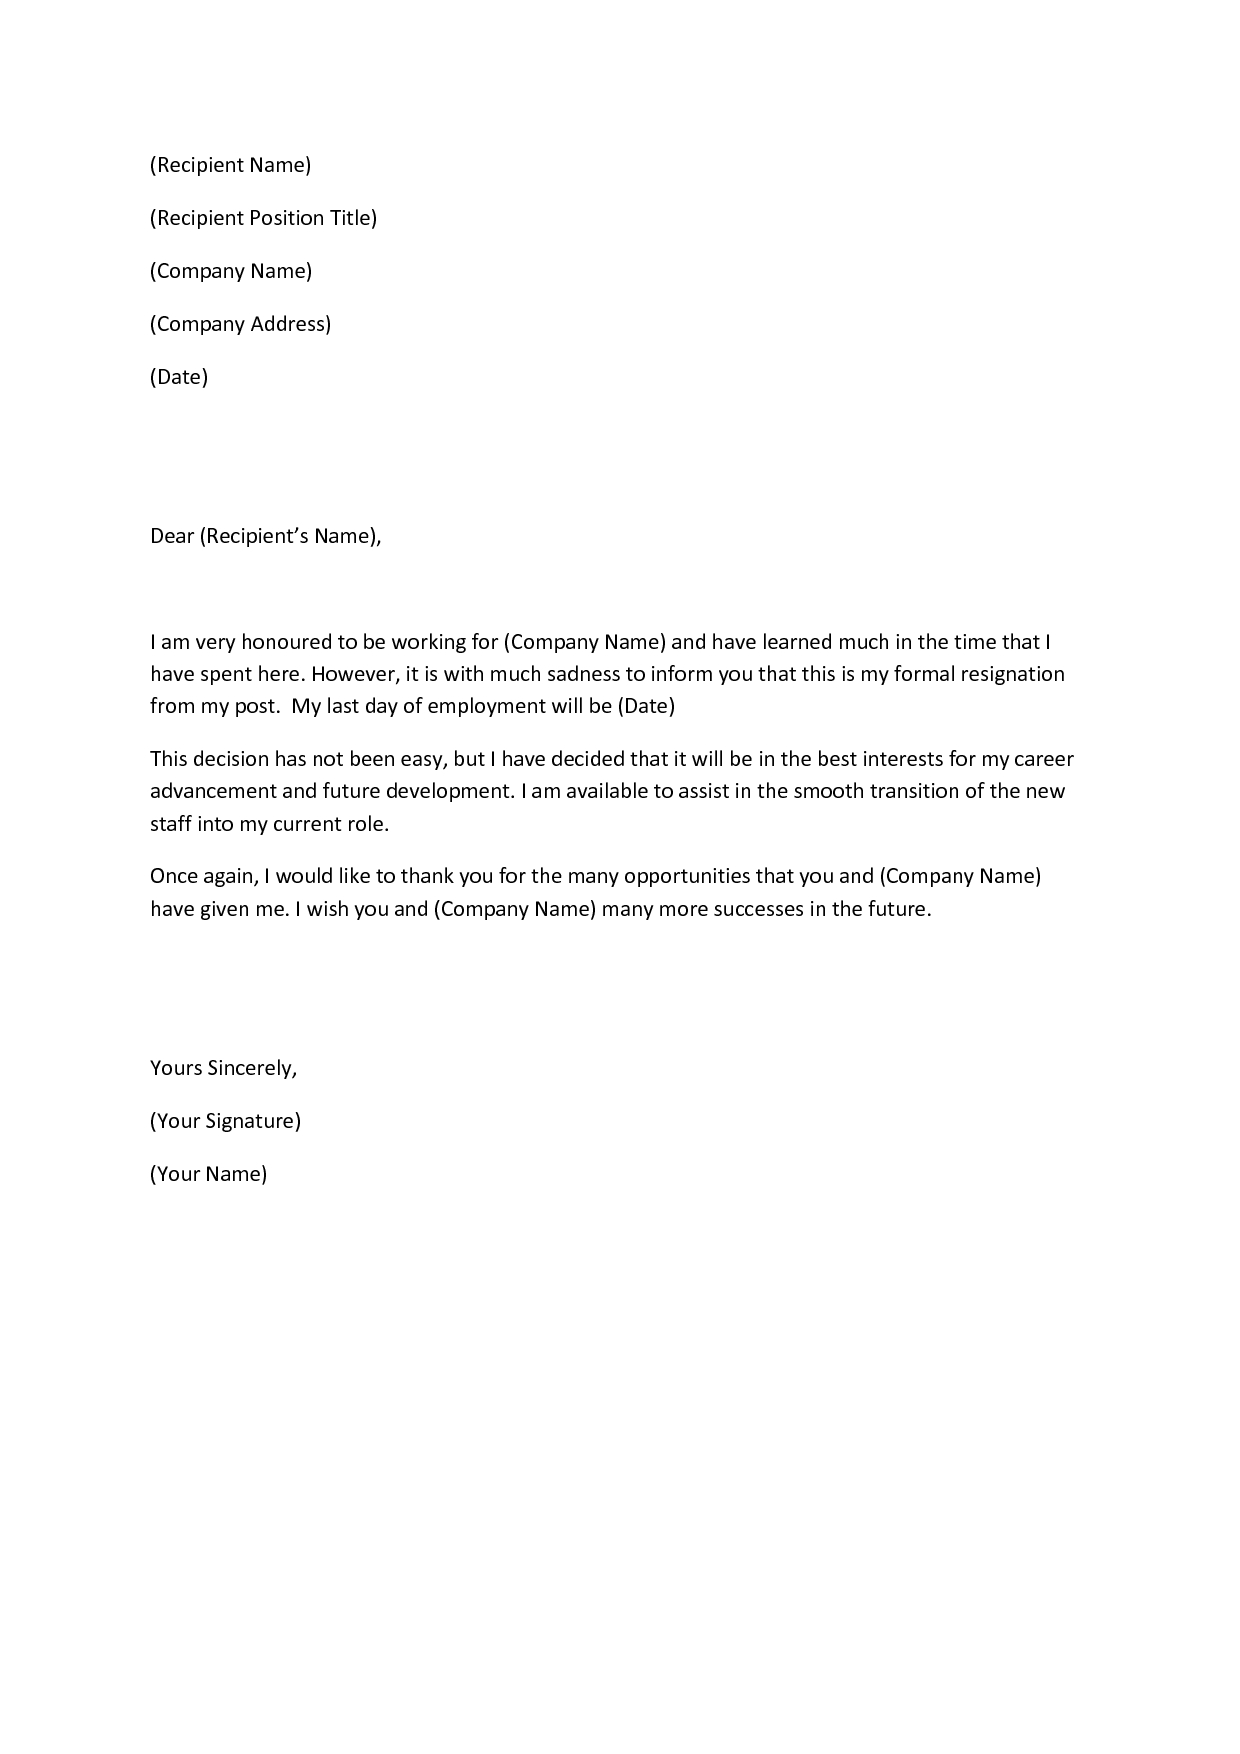 Sample Resignation Letter Template - This Article Will Include Multiple Sample Letters for Quitting A Job